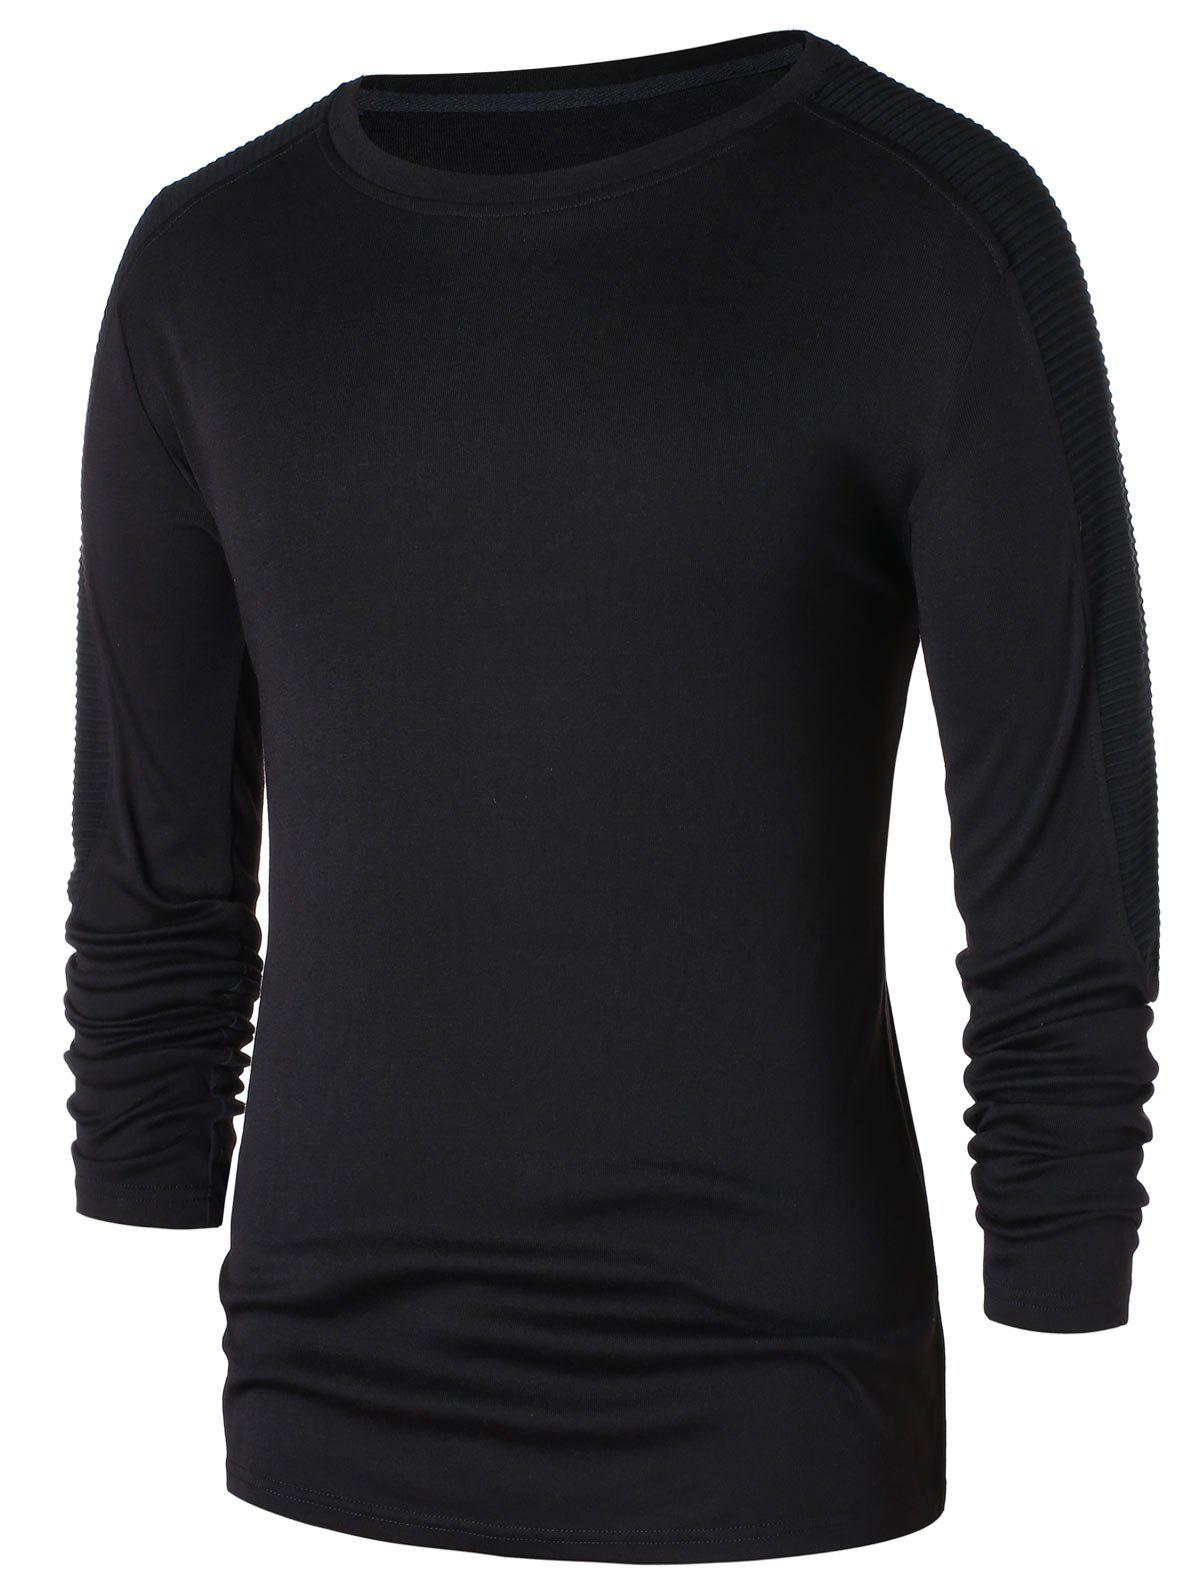 Raglan Sleeve Round Neck T-shirt - BLACK 2XL